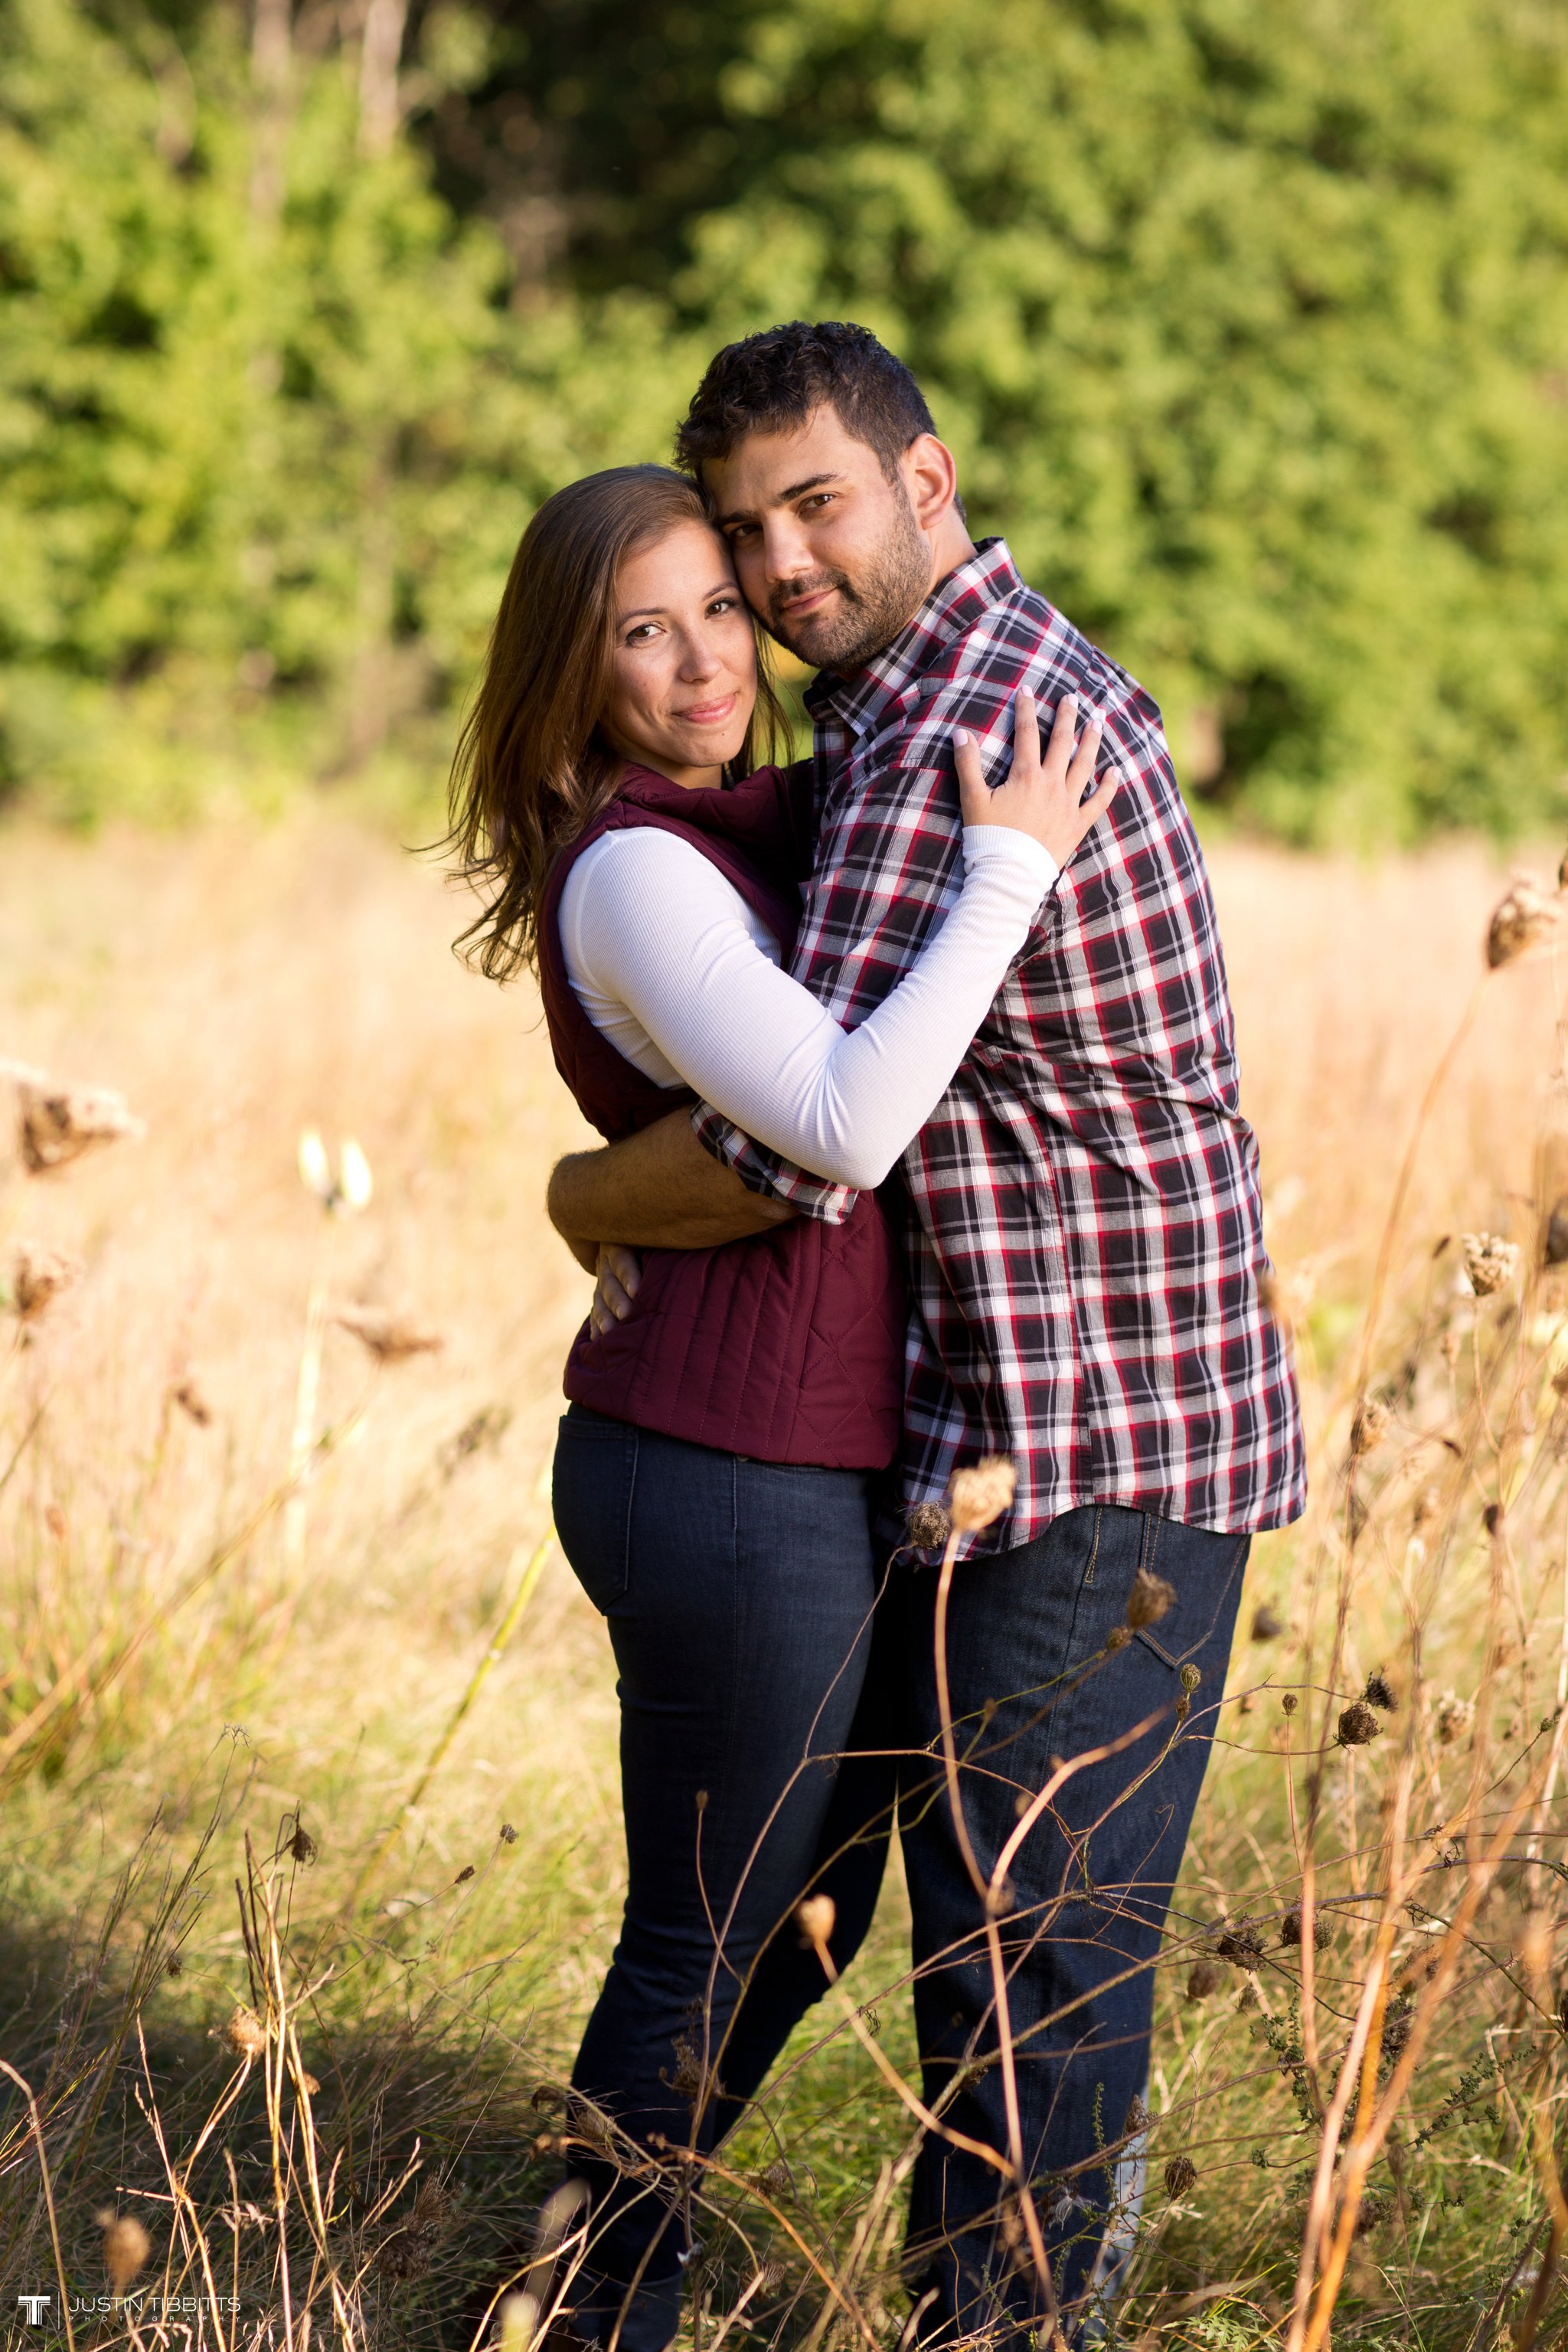 saratoga-springs-ny-engagement-shoot-with-nick-and-ciara_0017